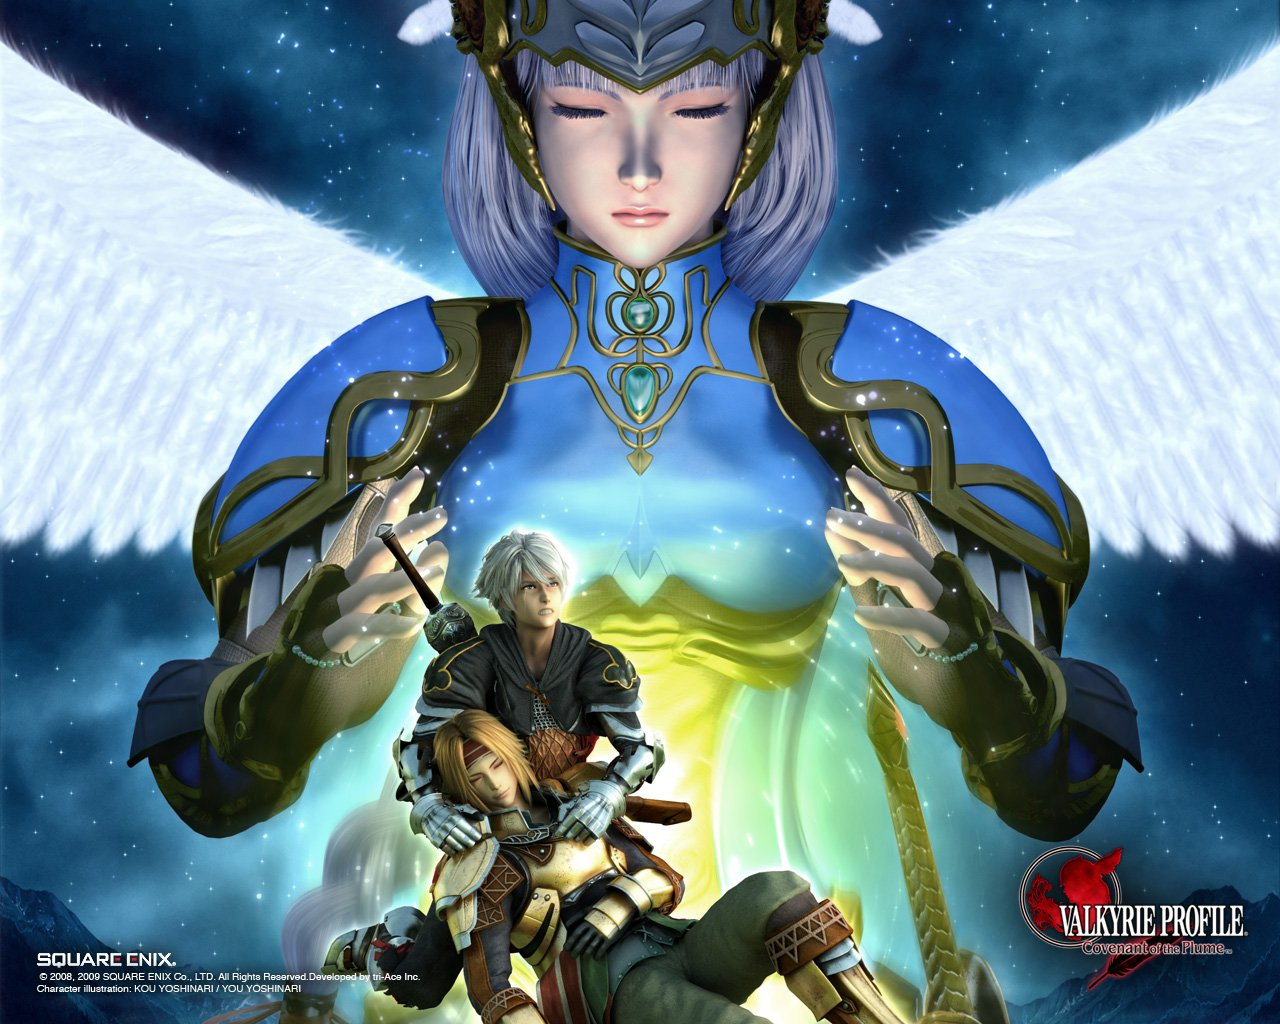 224612-valkyrie-profile-covenant-of-the-